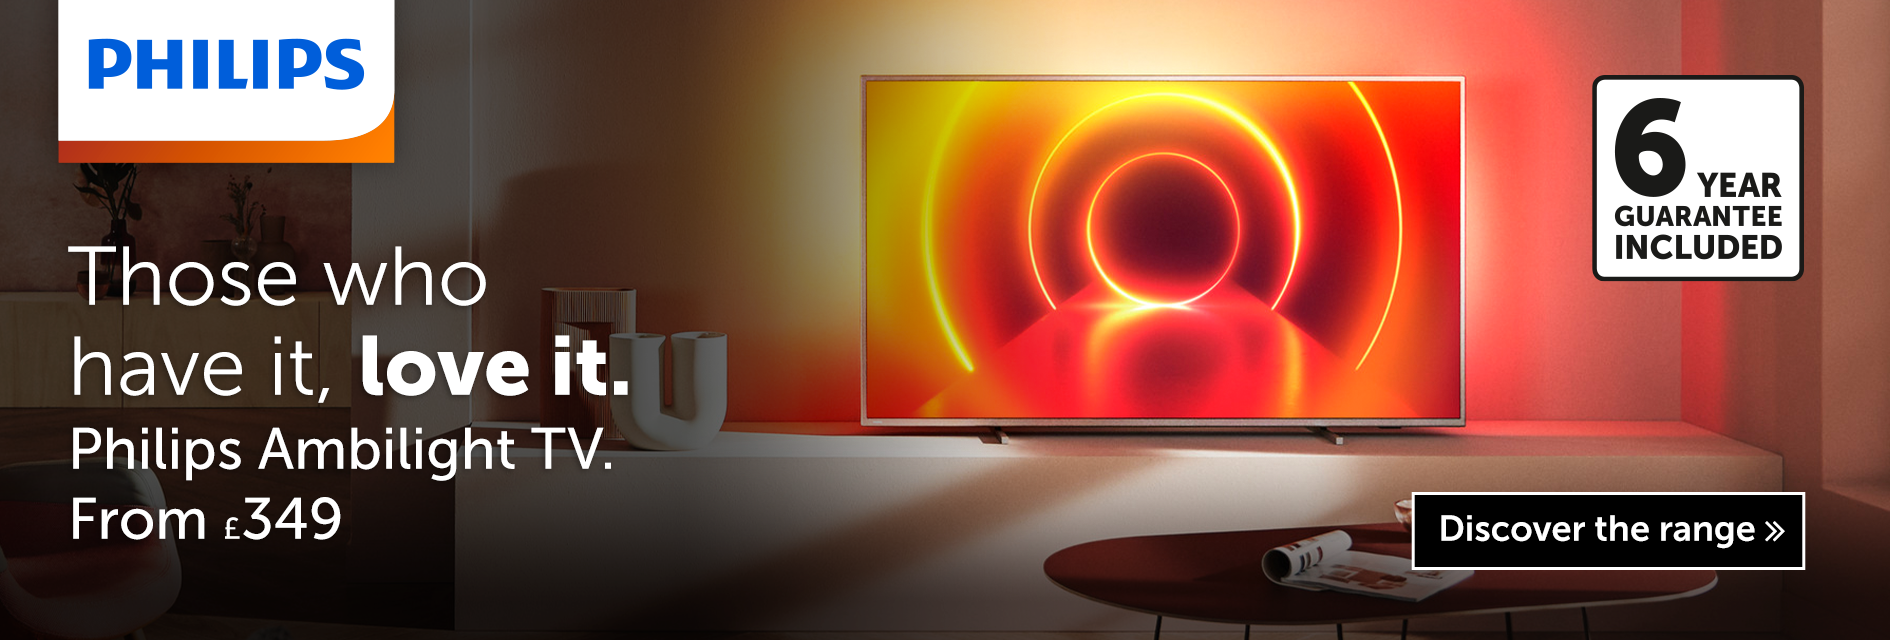 Those who have it love it - Philips Ambilight TV - From £349